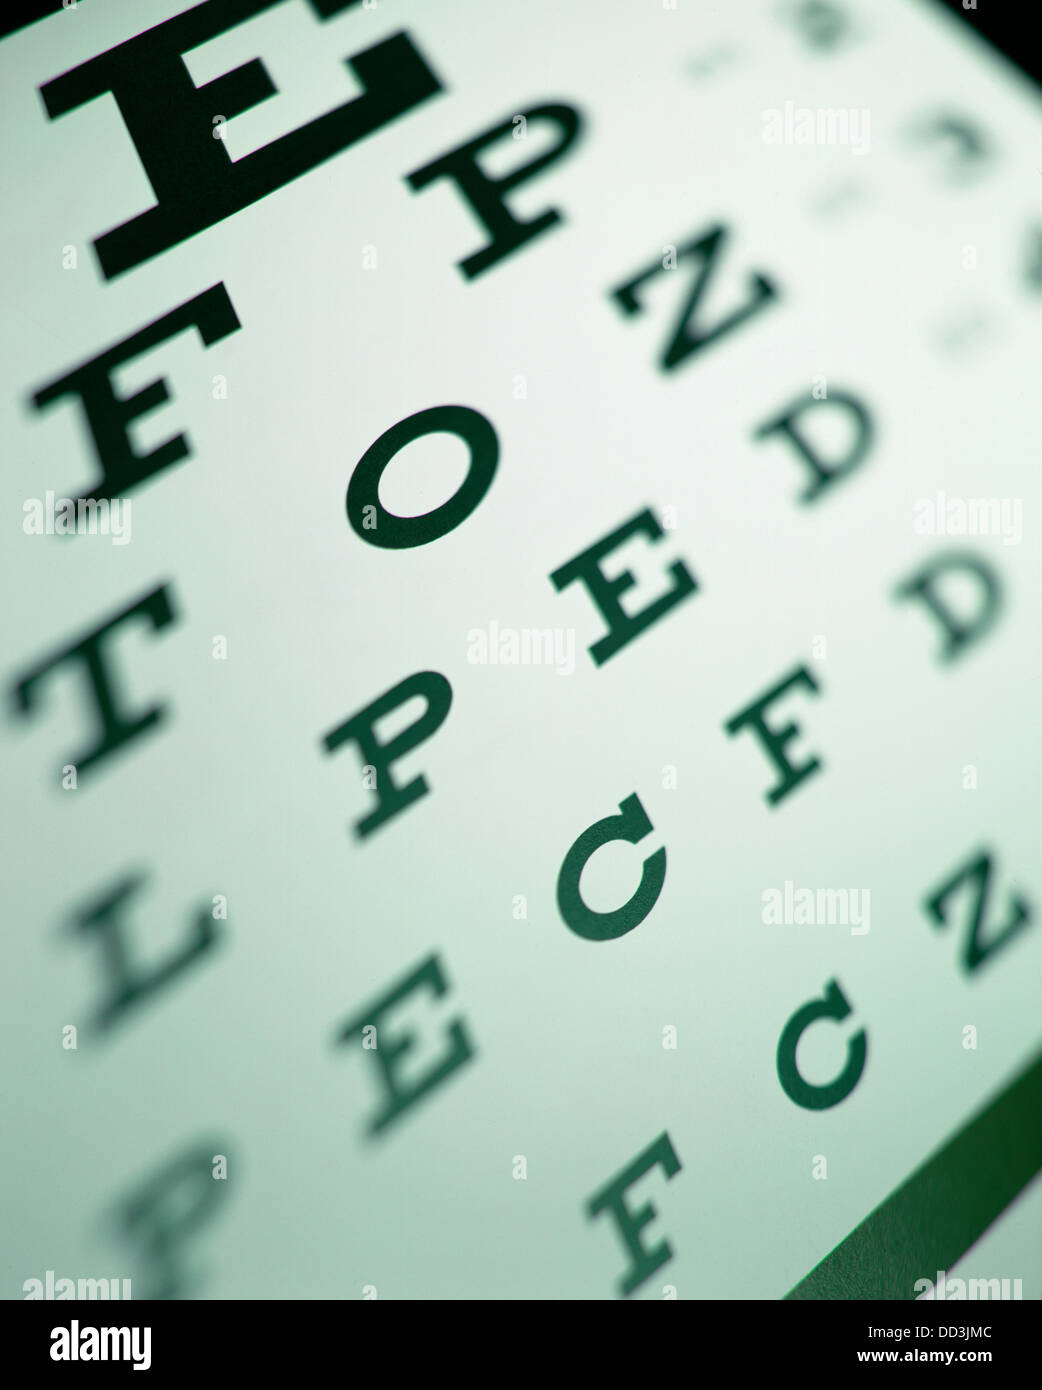 A eye chart seen with sharp and out of focus areas. - Stock Image